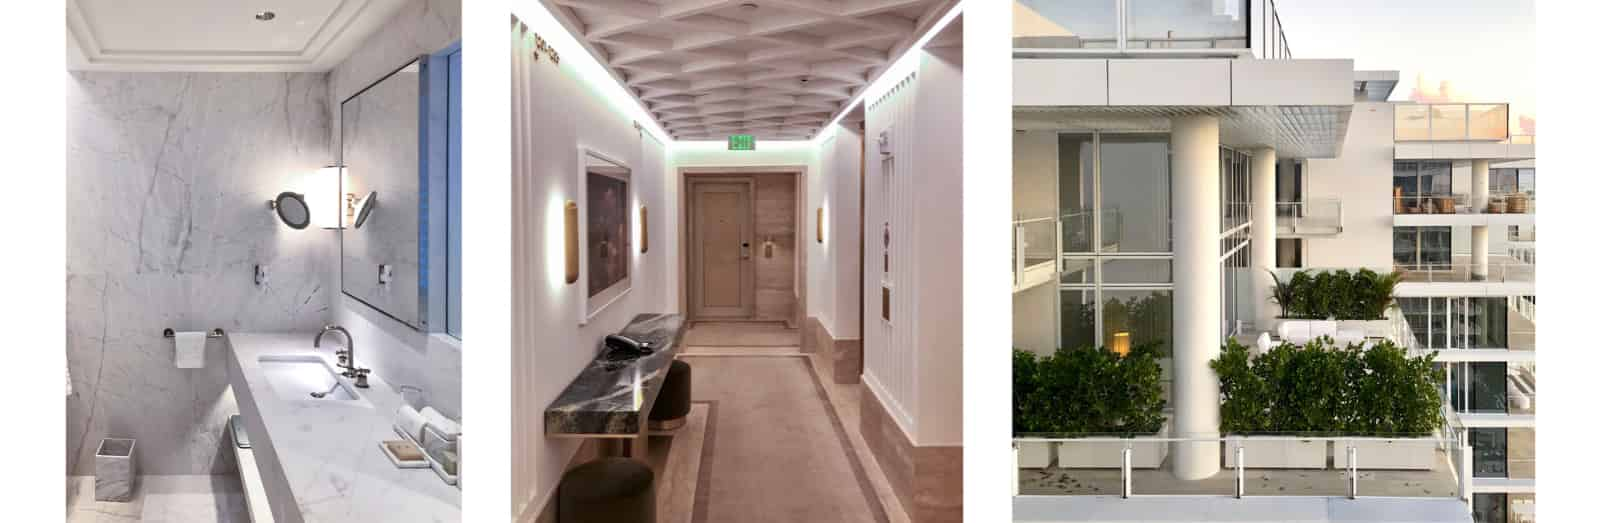 Three images arranged horizontally. Leftmost is an image of a white marble bathroom inside the hotel room. In the middle is a image of the beige textured hallway, and rightmost is an image of a balcony garden at the Surf Club residences.